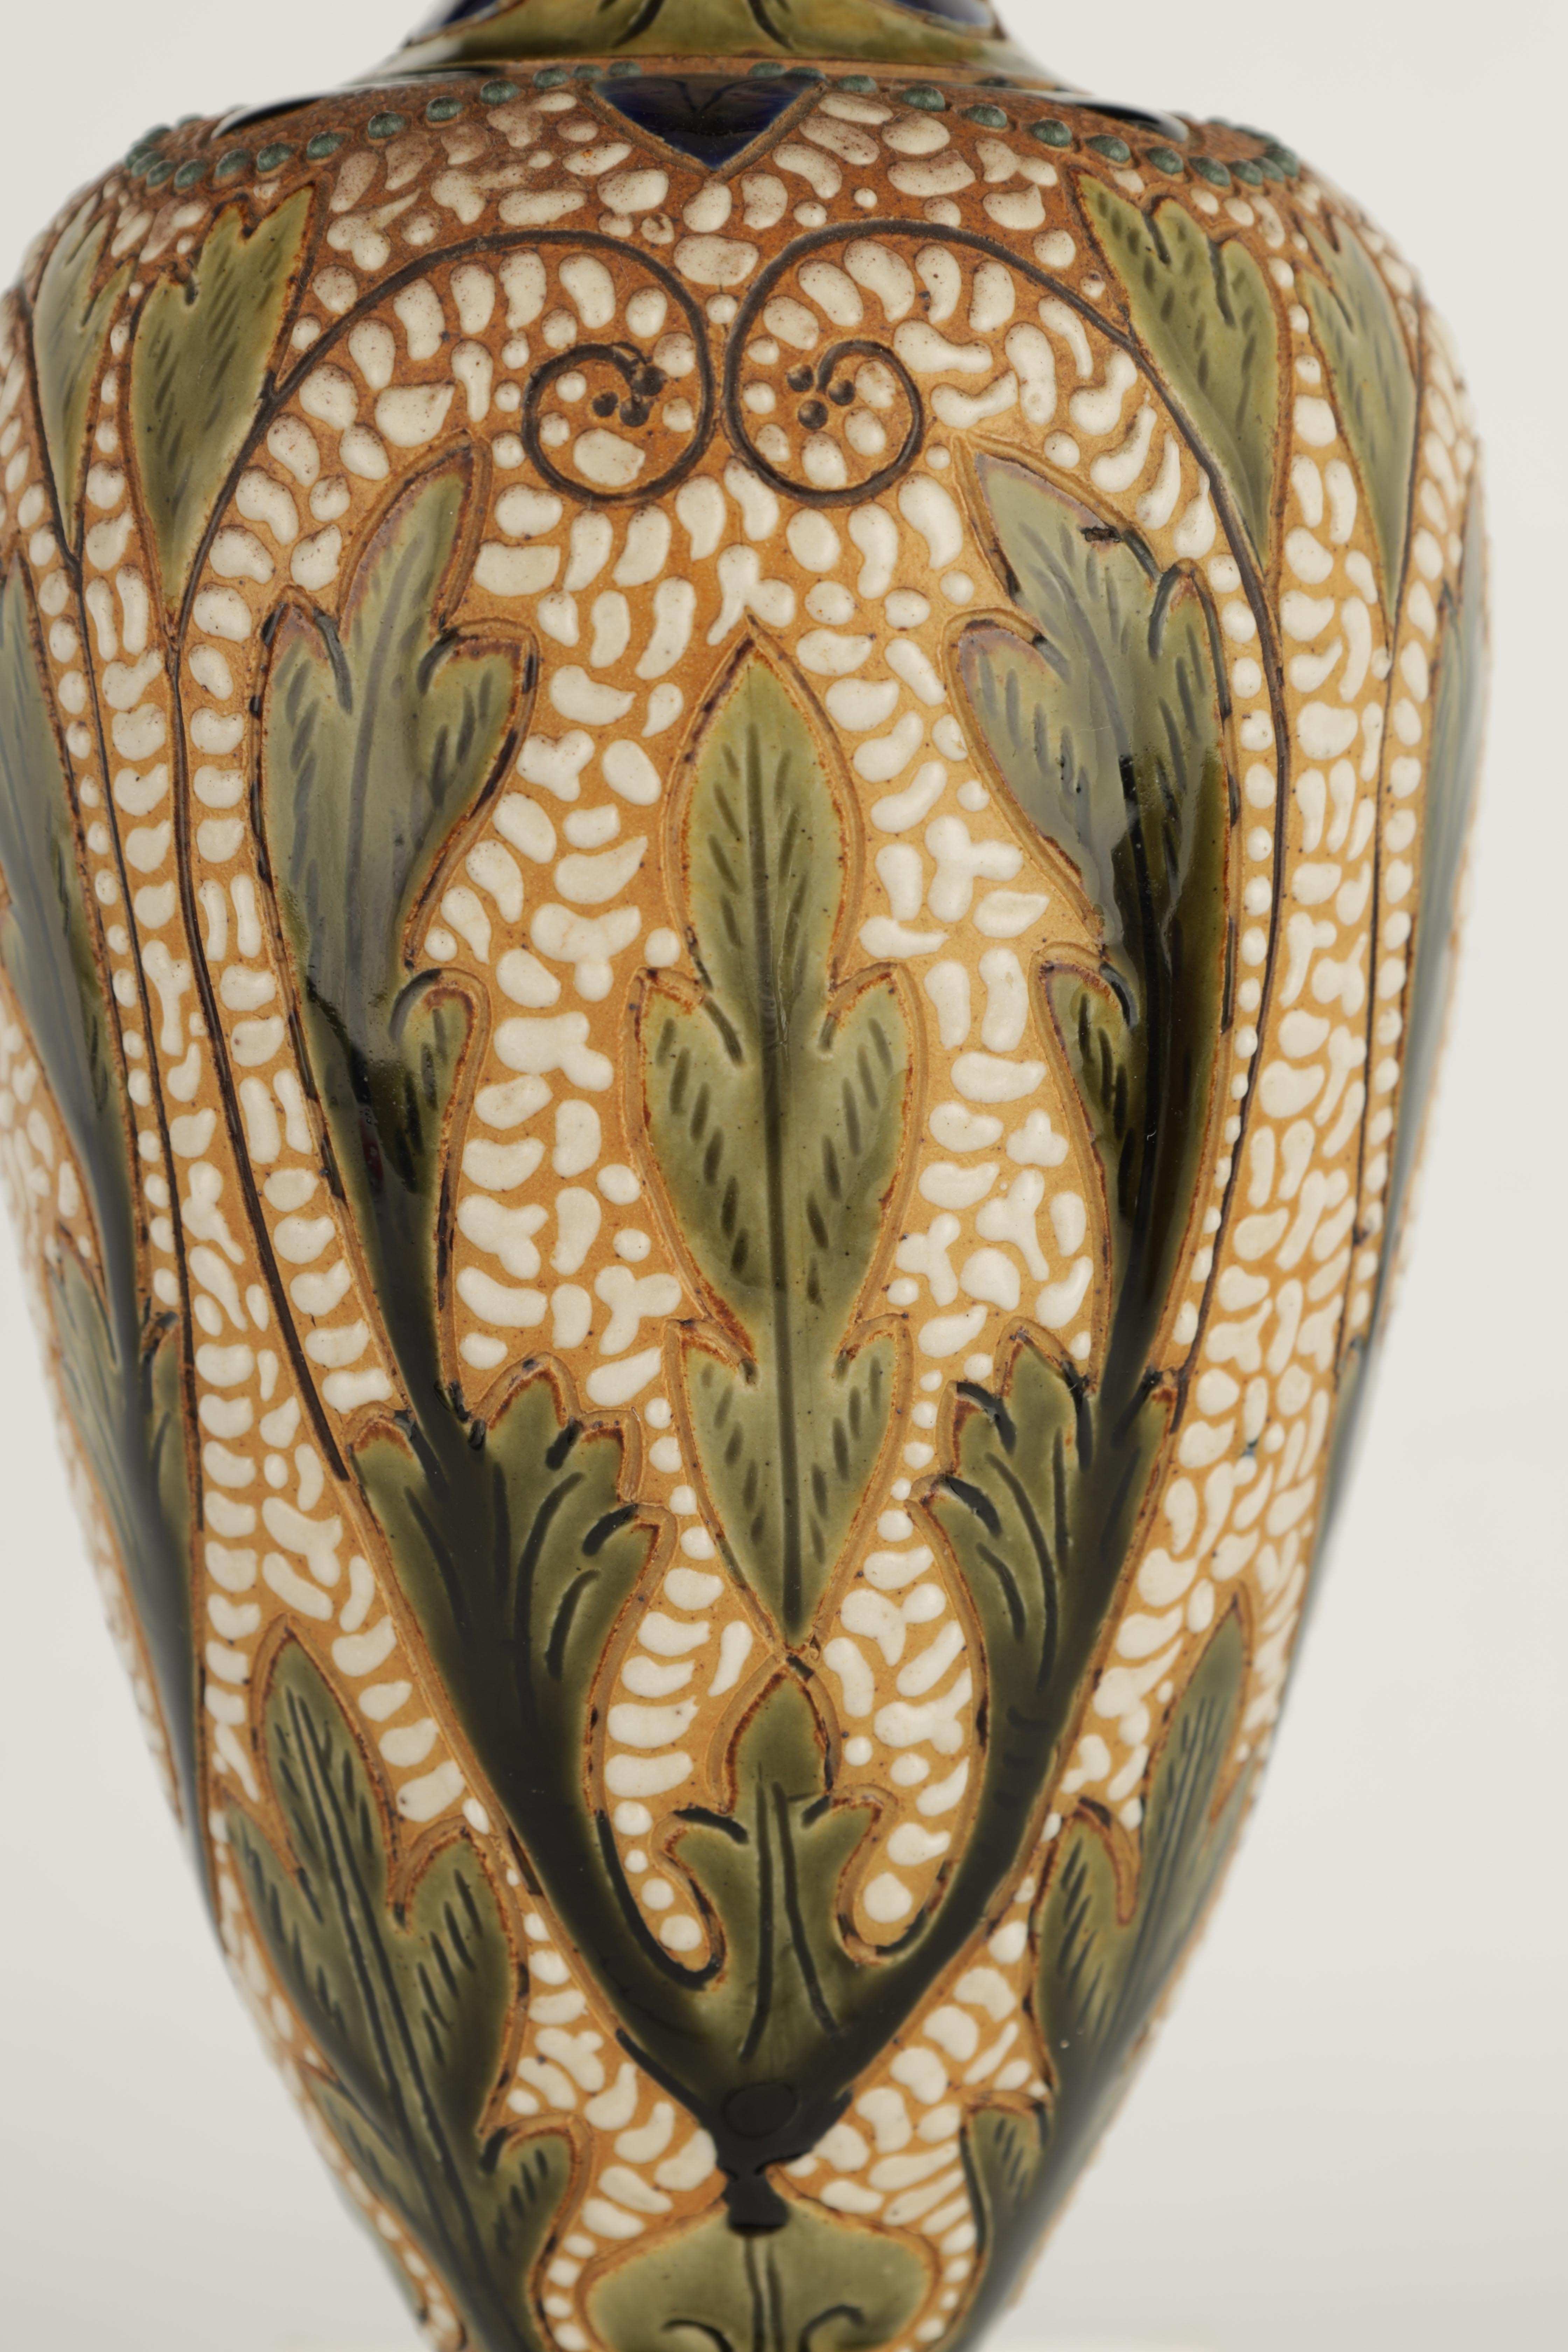 AN UNUSUAL LATE 19TH CENTURY FULHAM POTTERY STONEWARE FOOTED OVOID VASE WITH FLARED RIM decorated - Image 3 of 6